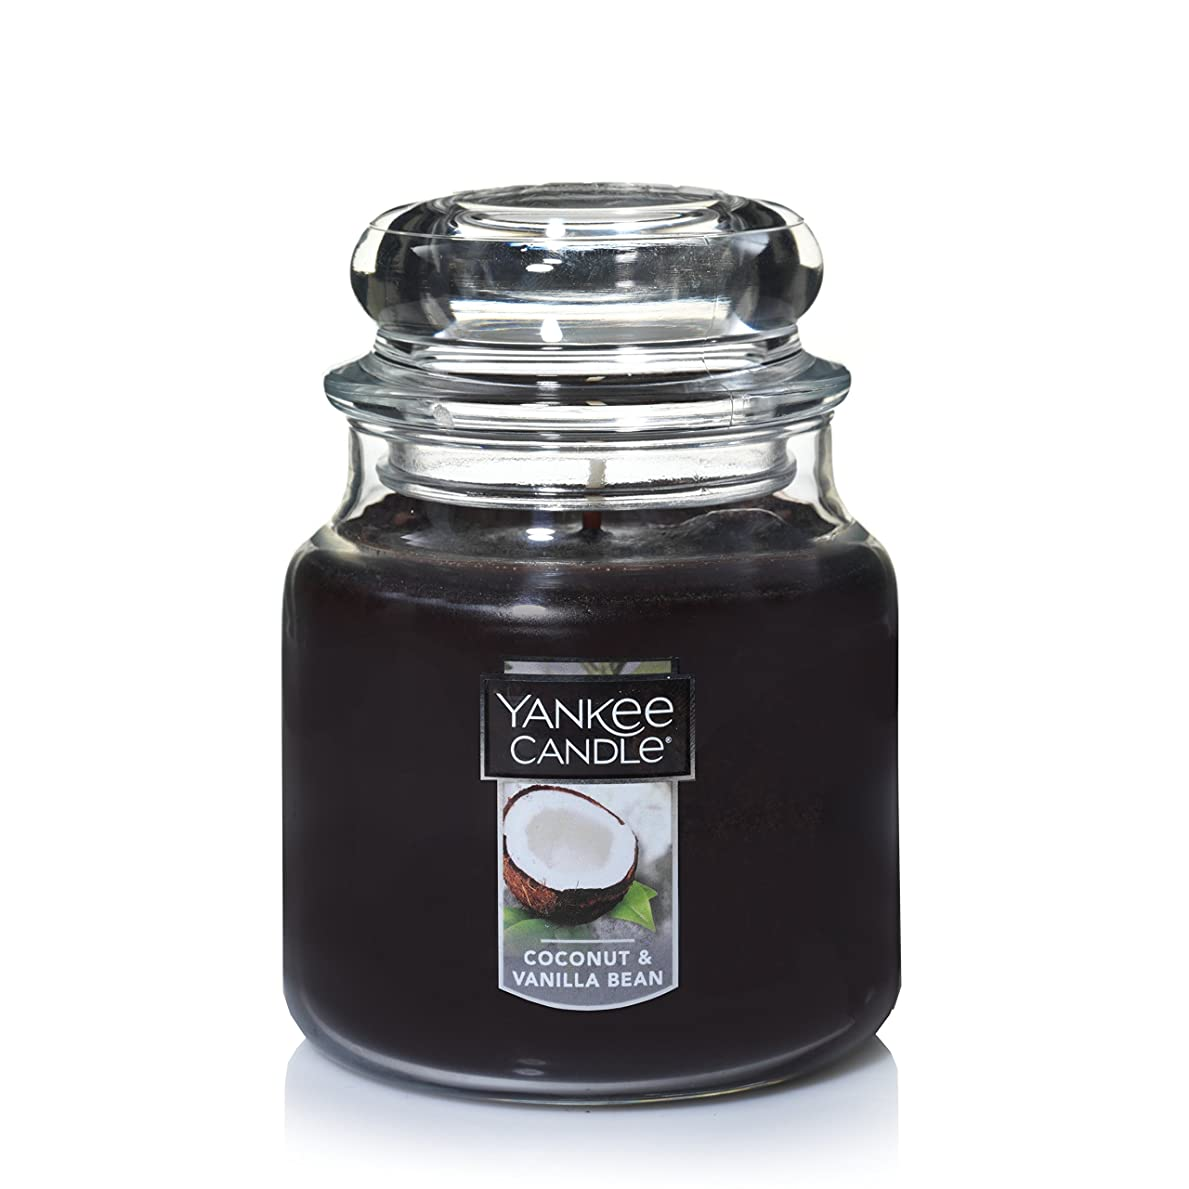 無知アマチュア反射Yankee Candle Coconut & Vanilla Bean , Food & Spice香り Medium Jar Candle ブラウン 1284531-YC